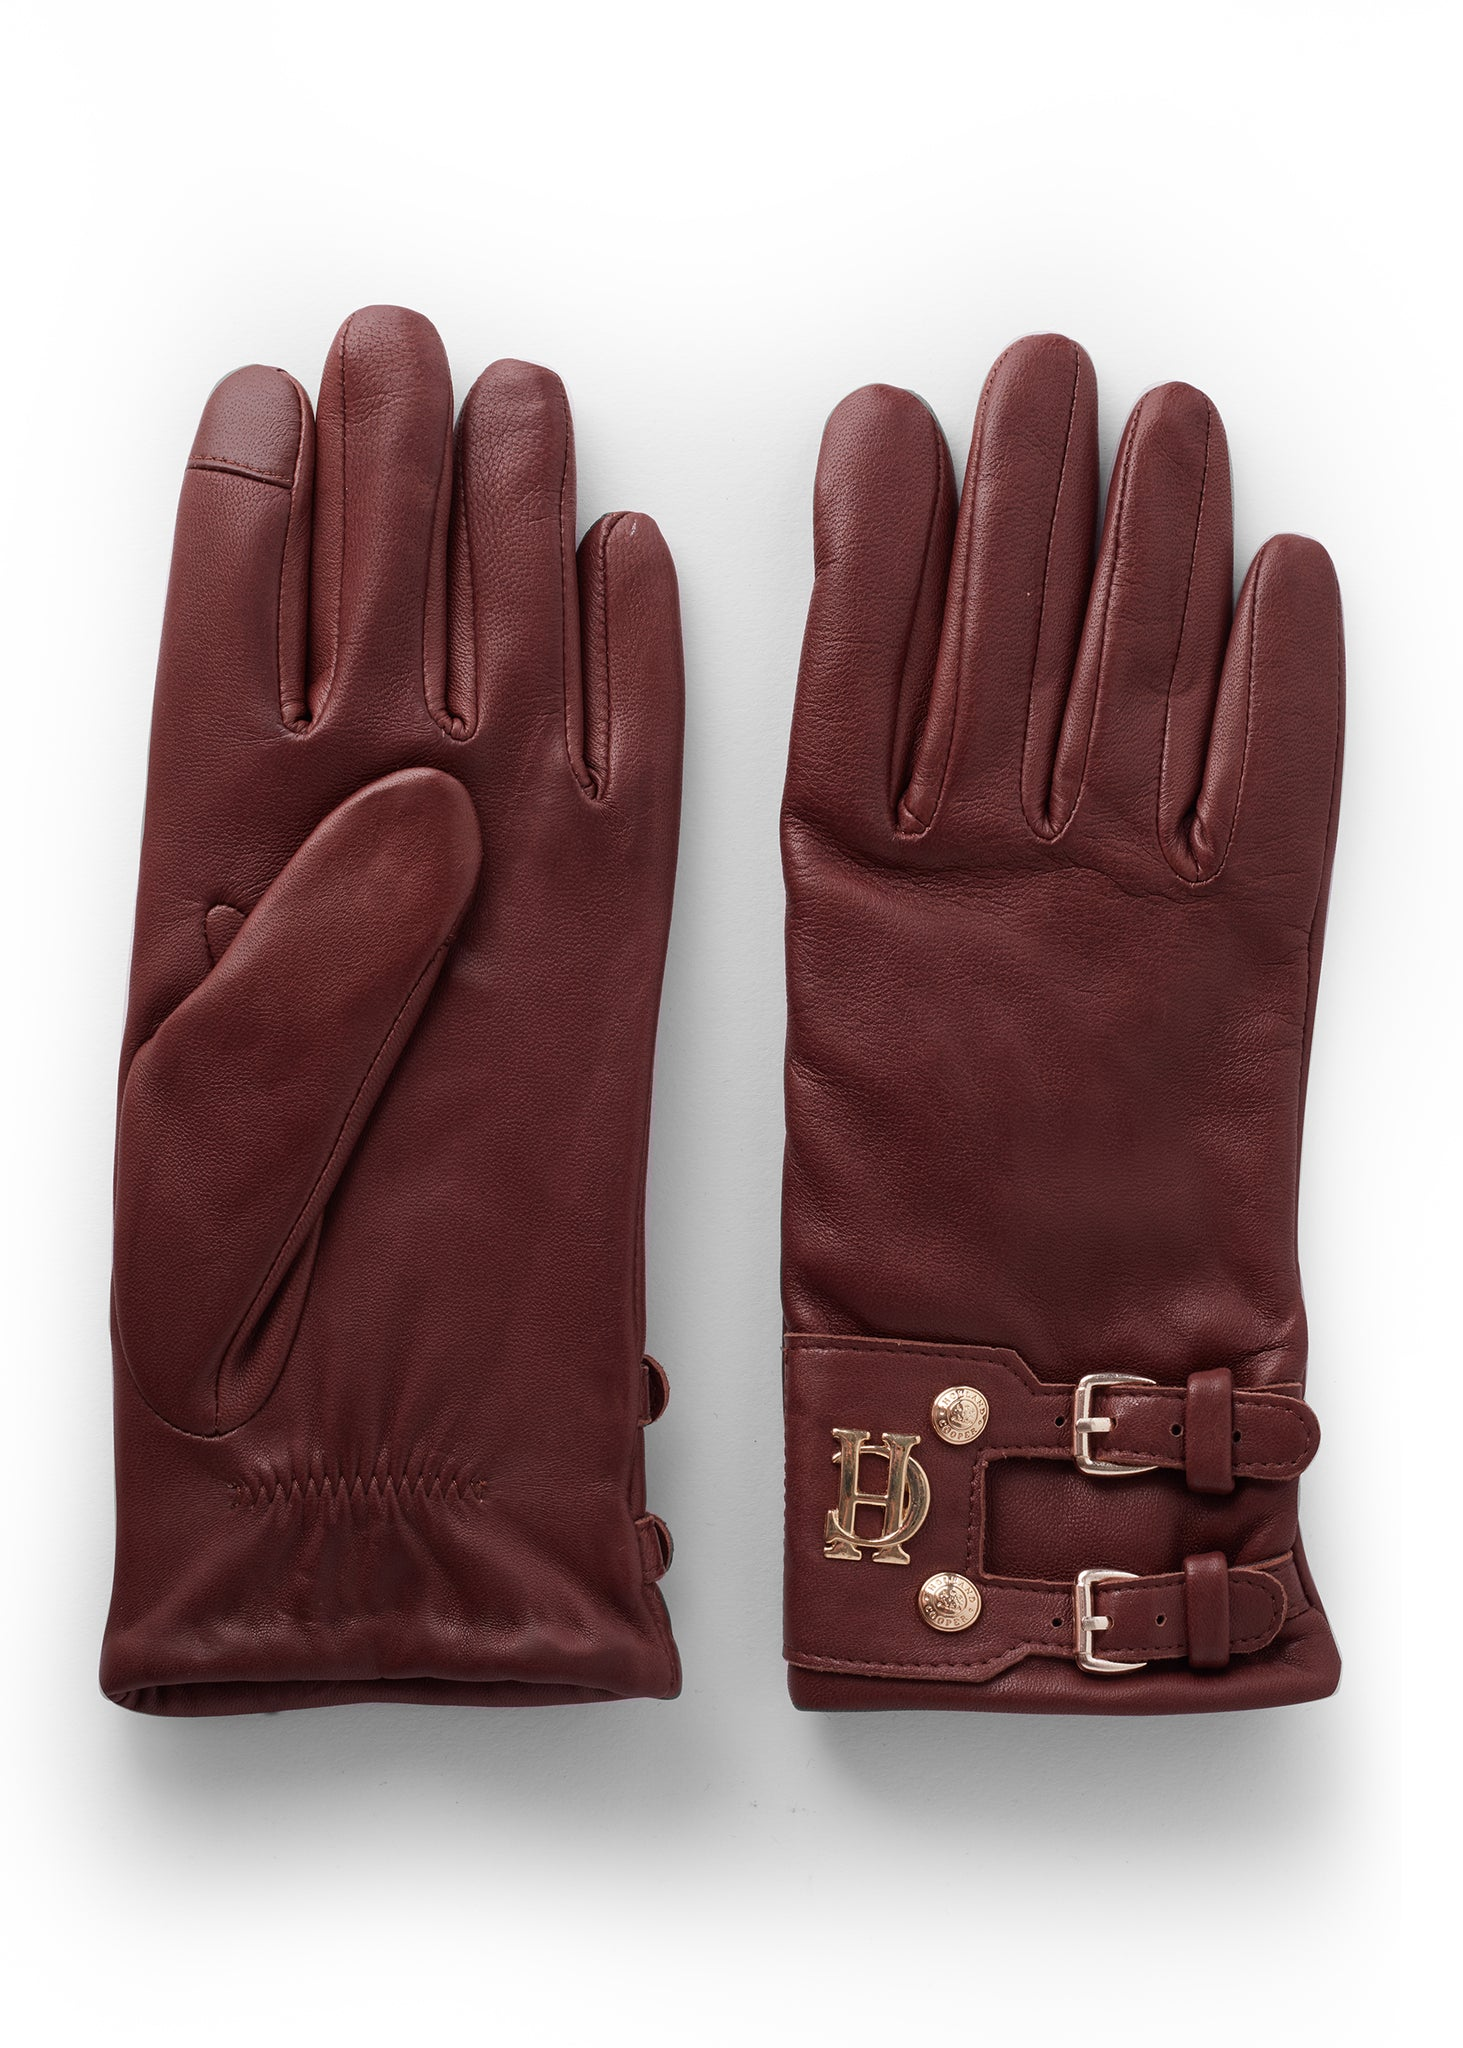 Monogram Leather Gloves (Chocolate)